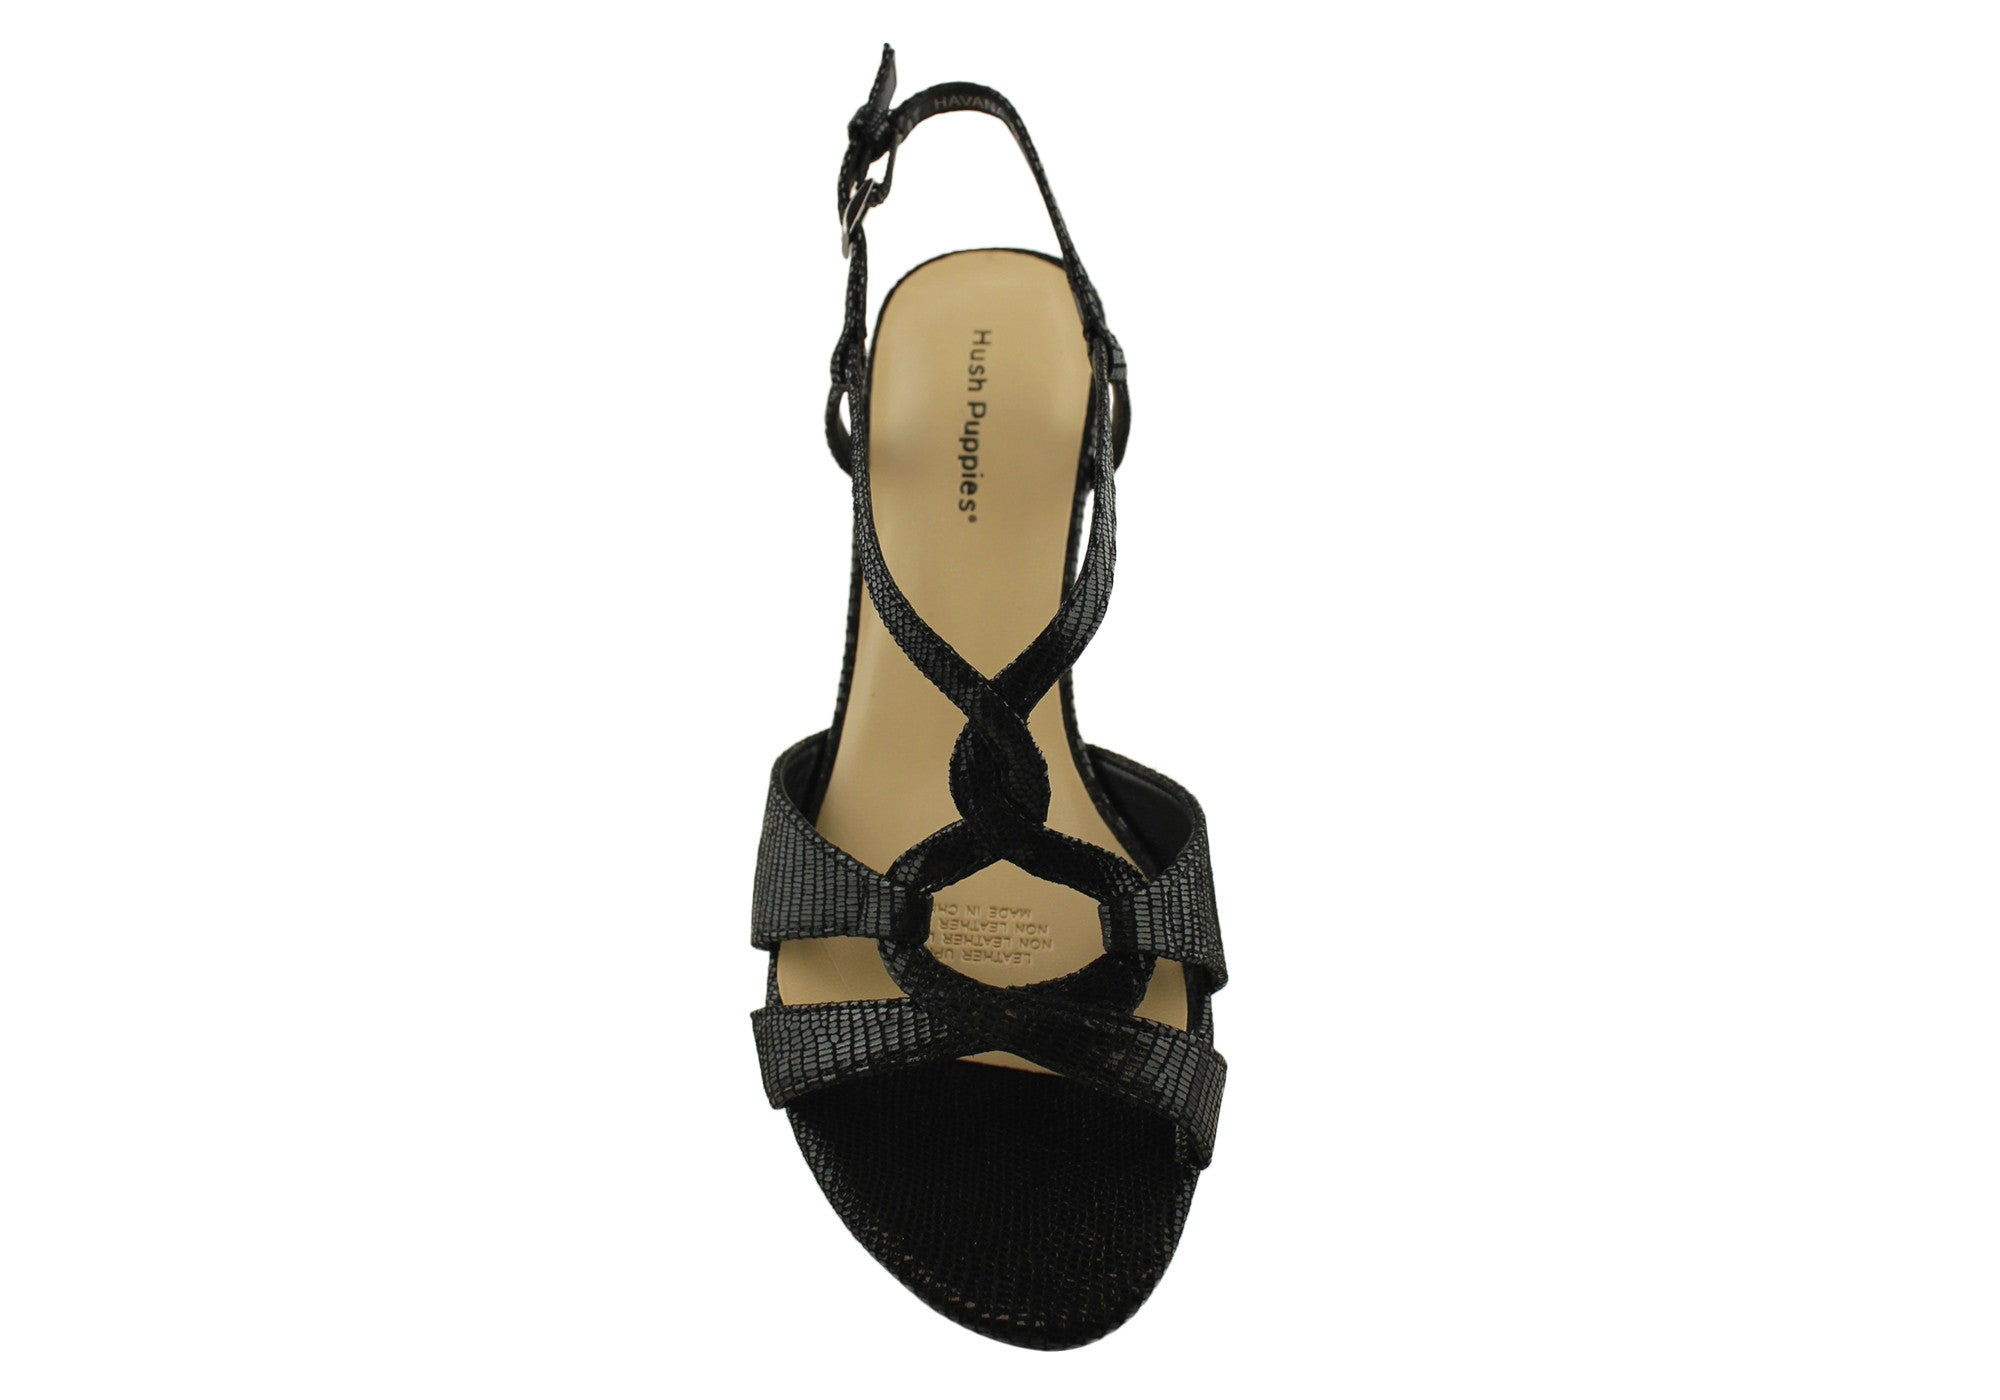 Hush Puppies Havana Womens Strappy Leather Sandals